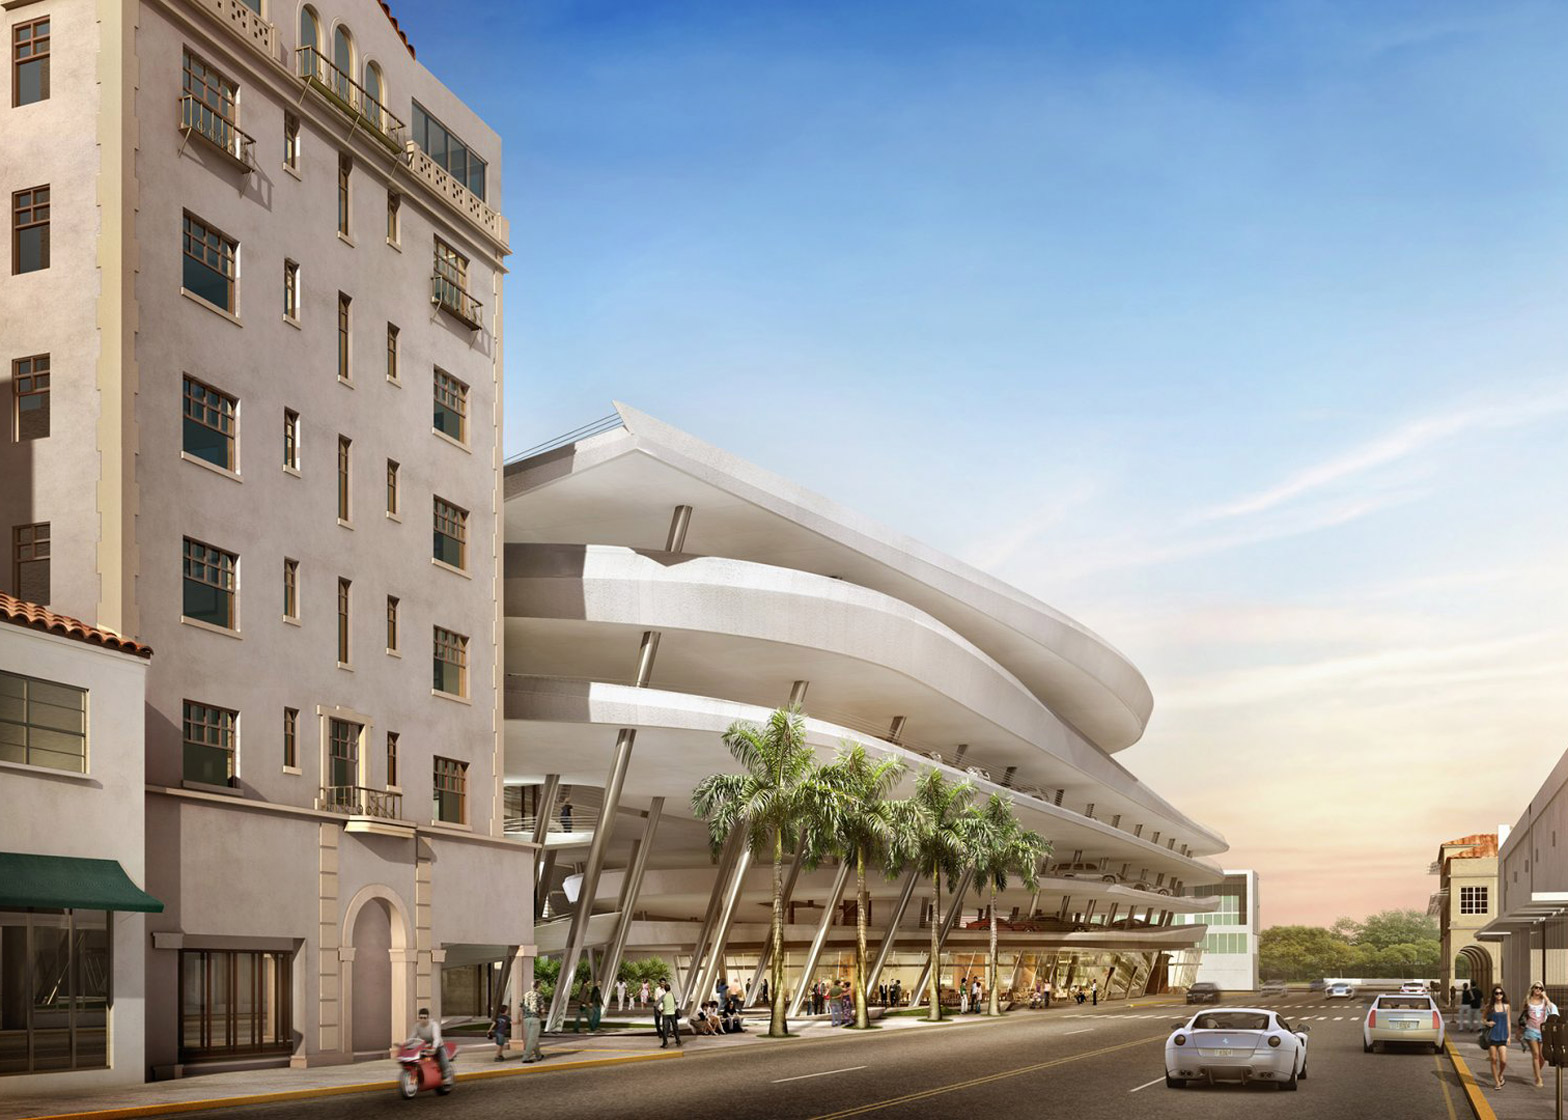 Zaha Hadid Miami parking lot rejected public architecture news USA